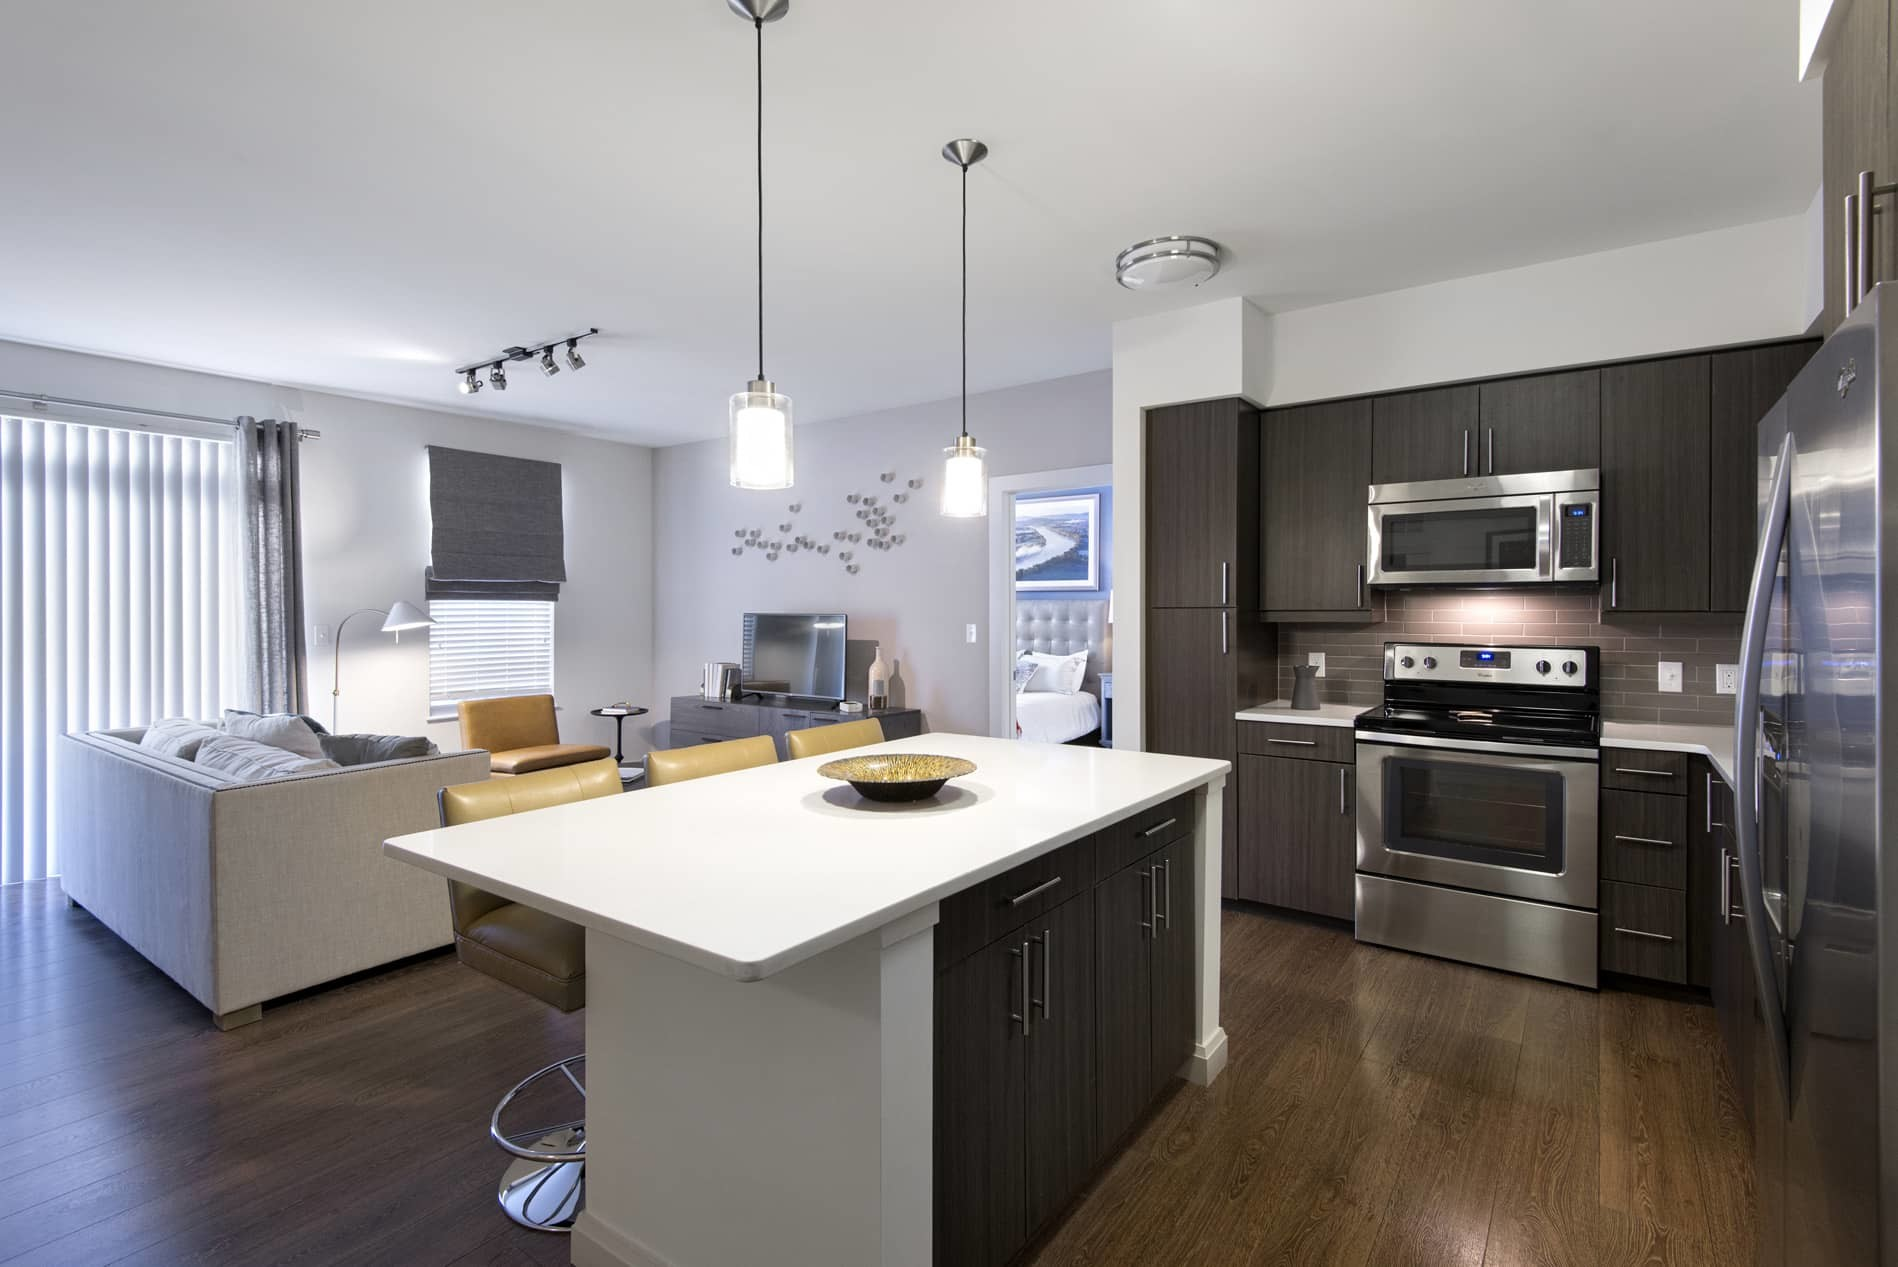 2 Beds, 2 Baths apartment in Waltham for $3,079